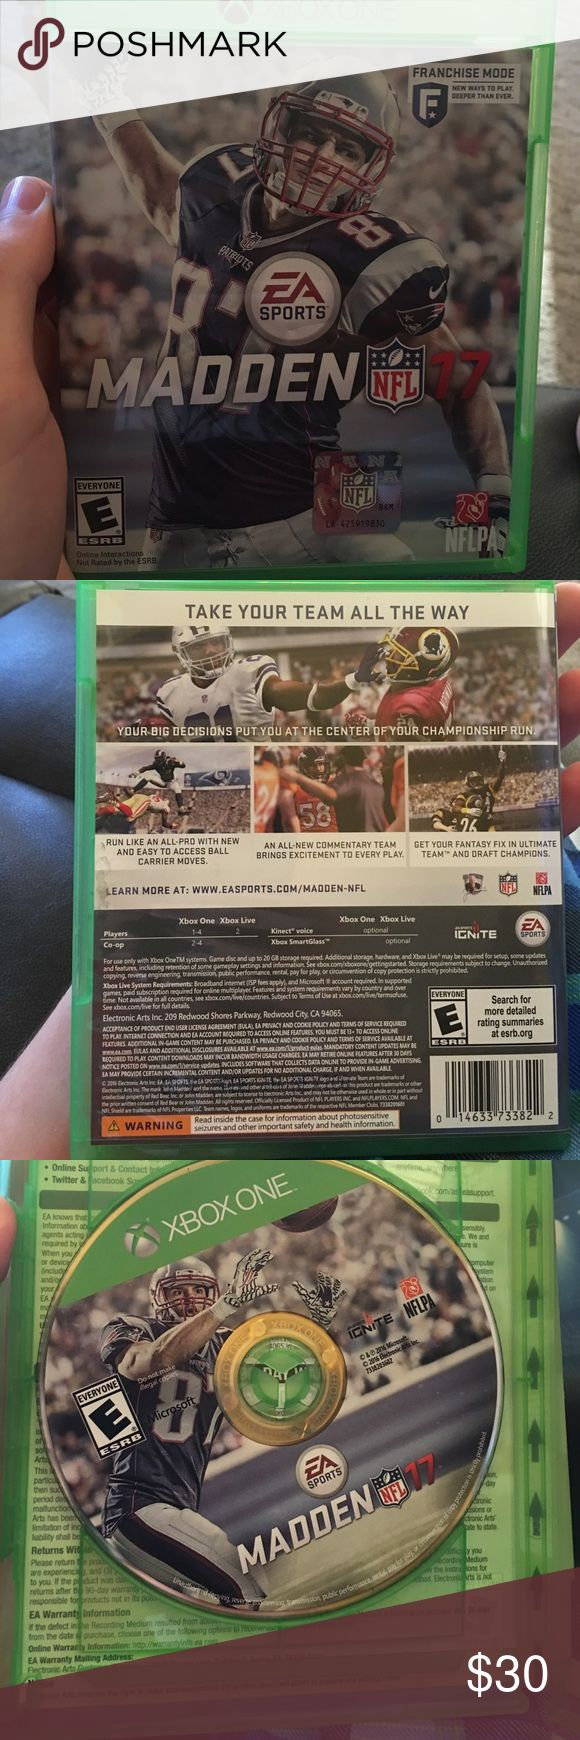 Madden 17 brand new madden 17 for xbox one got as a present and no longer needed nfl Other